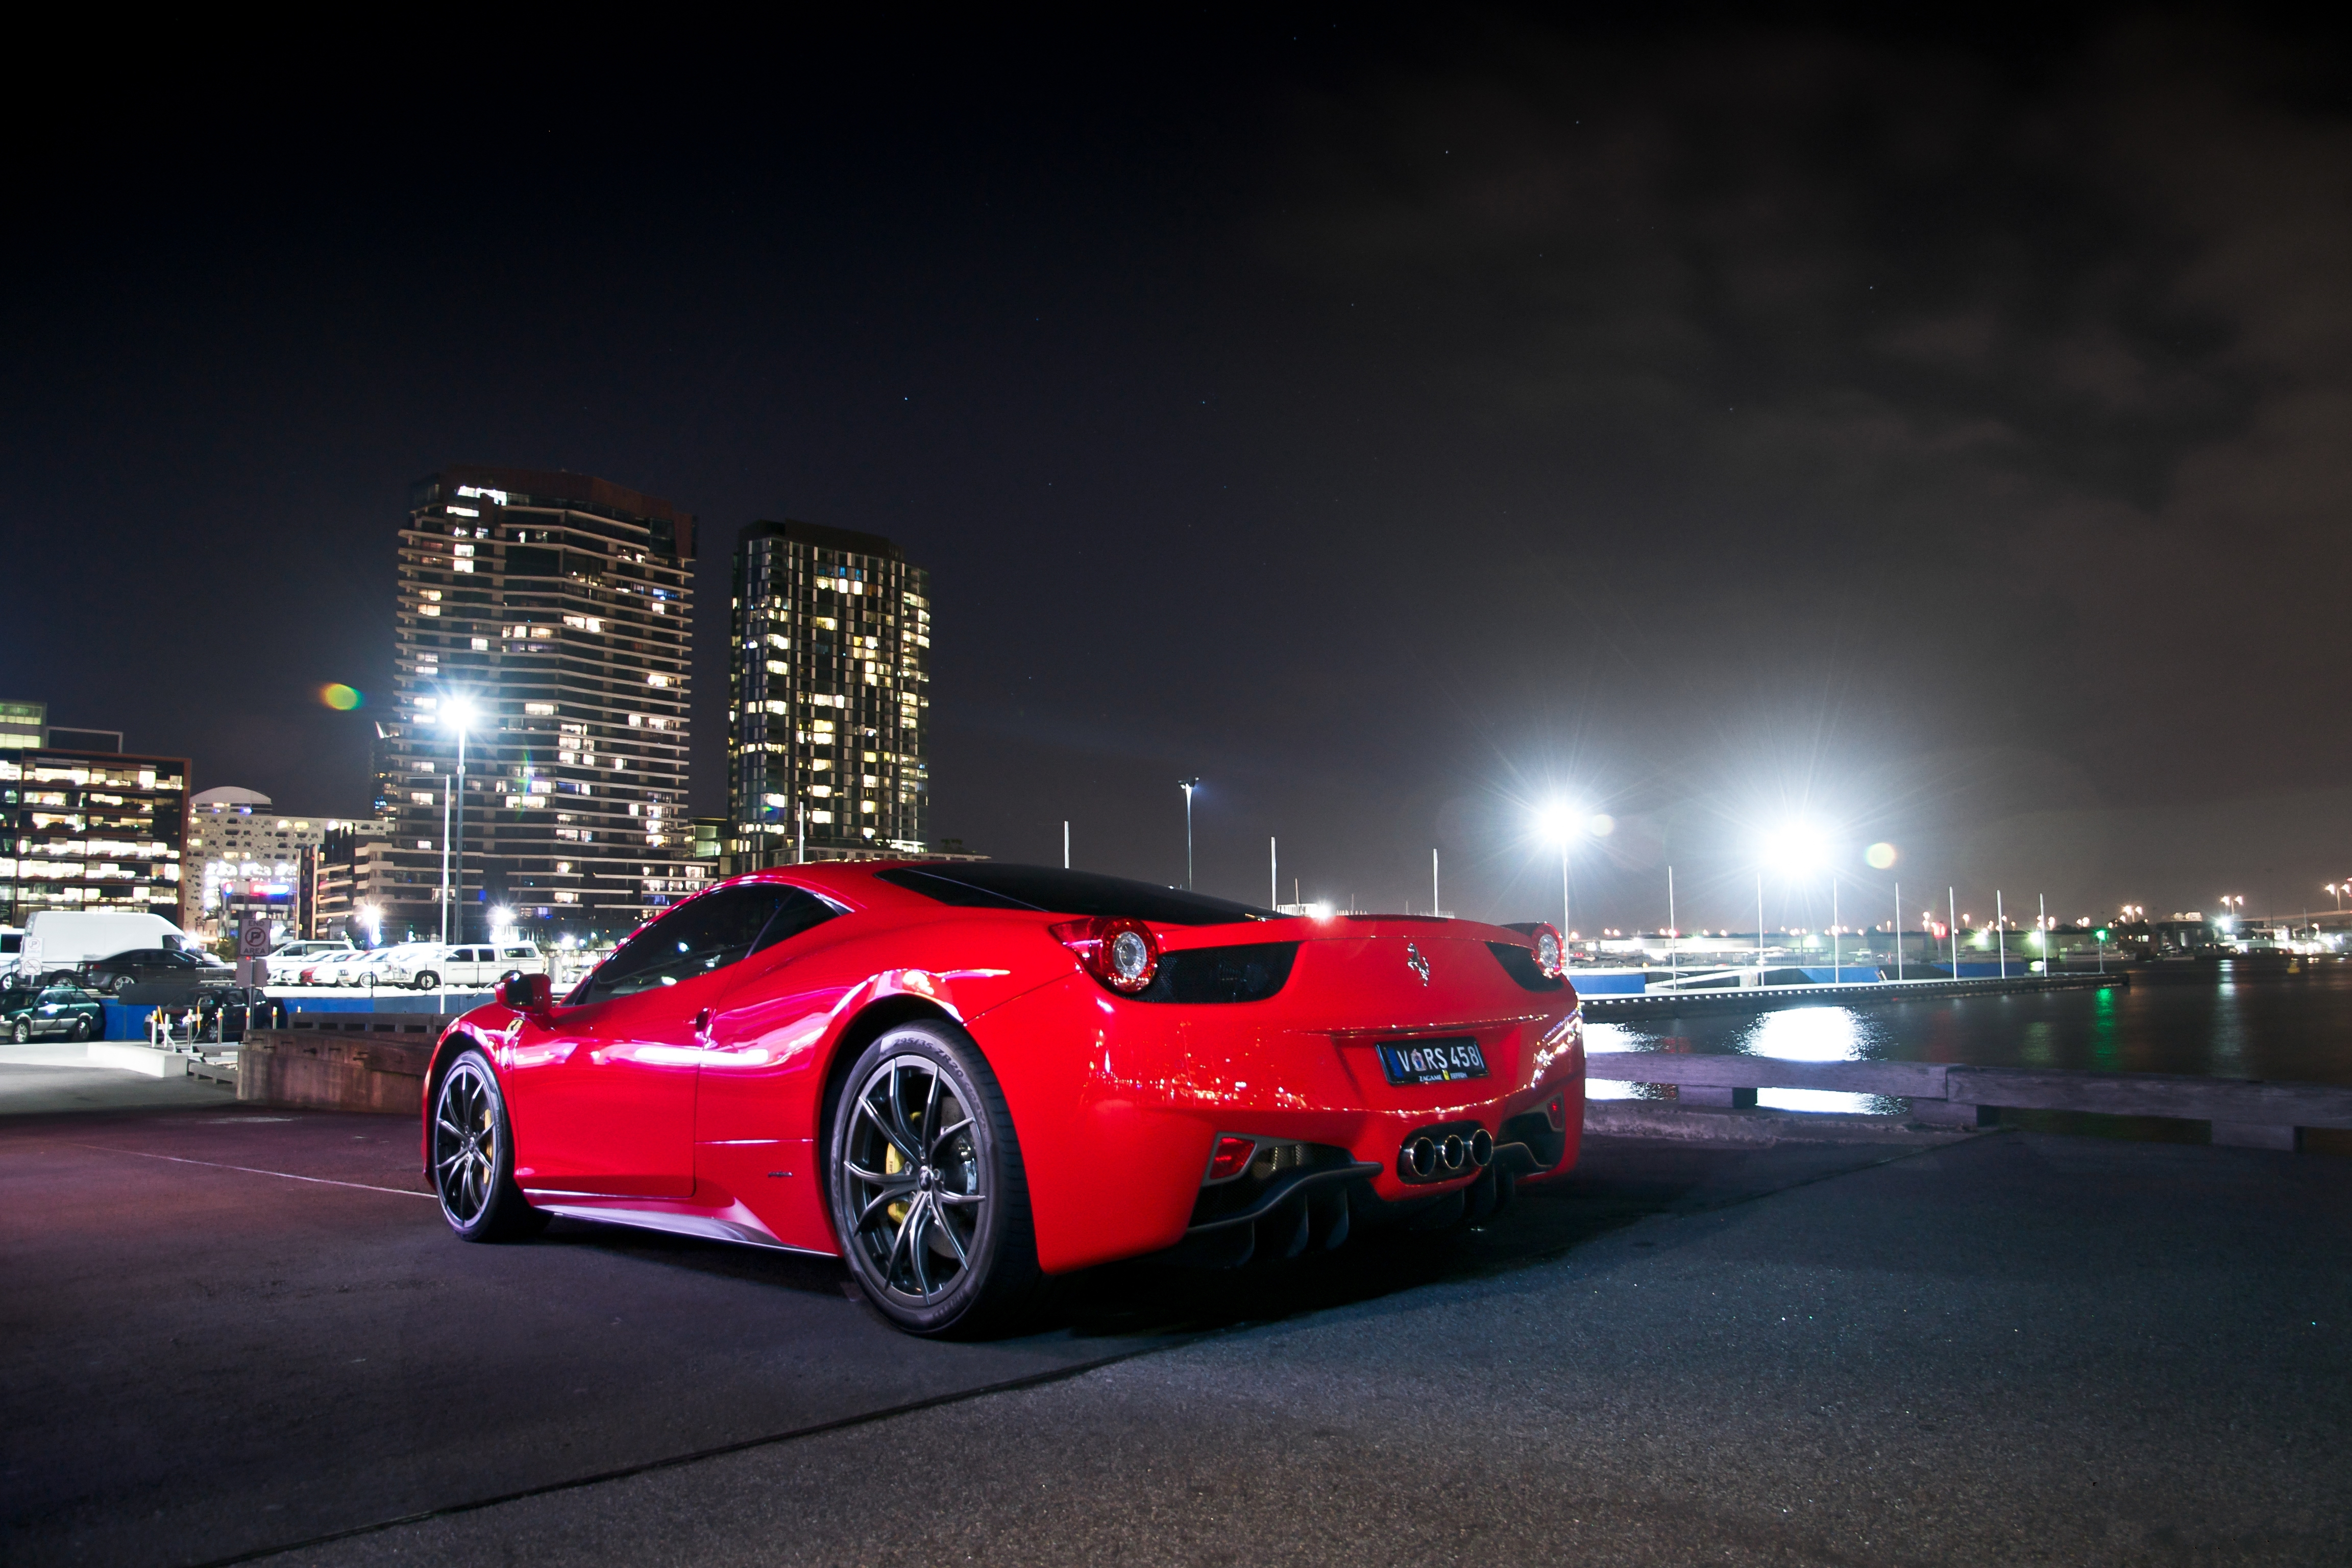 Wallpaper Wallpaper Coches Hd: Ferrari 458 Wallpapers, Pictures, Images